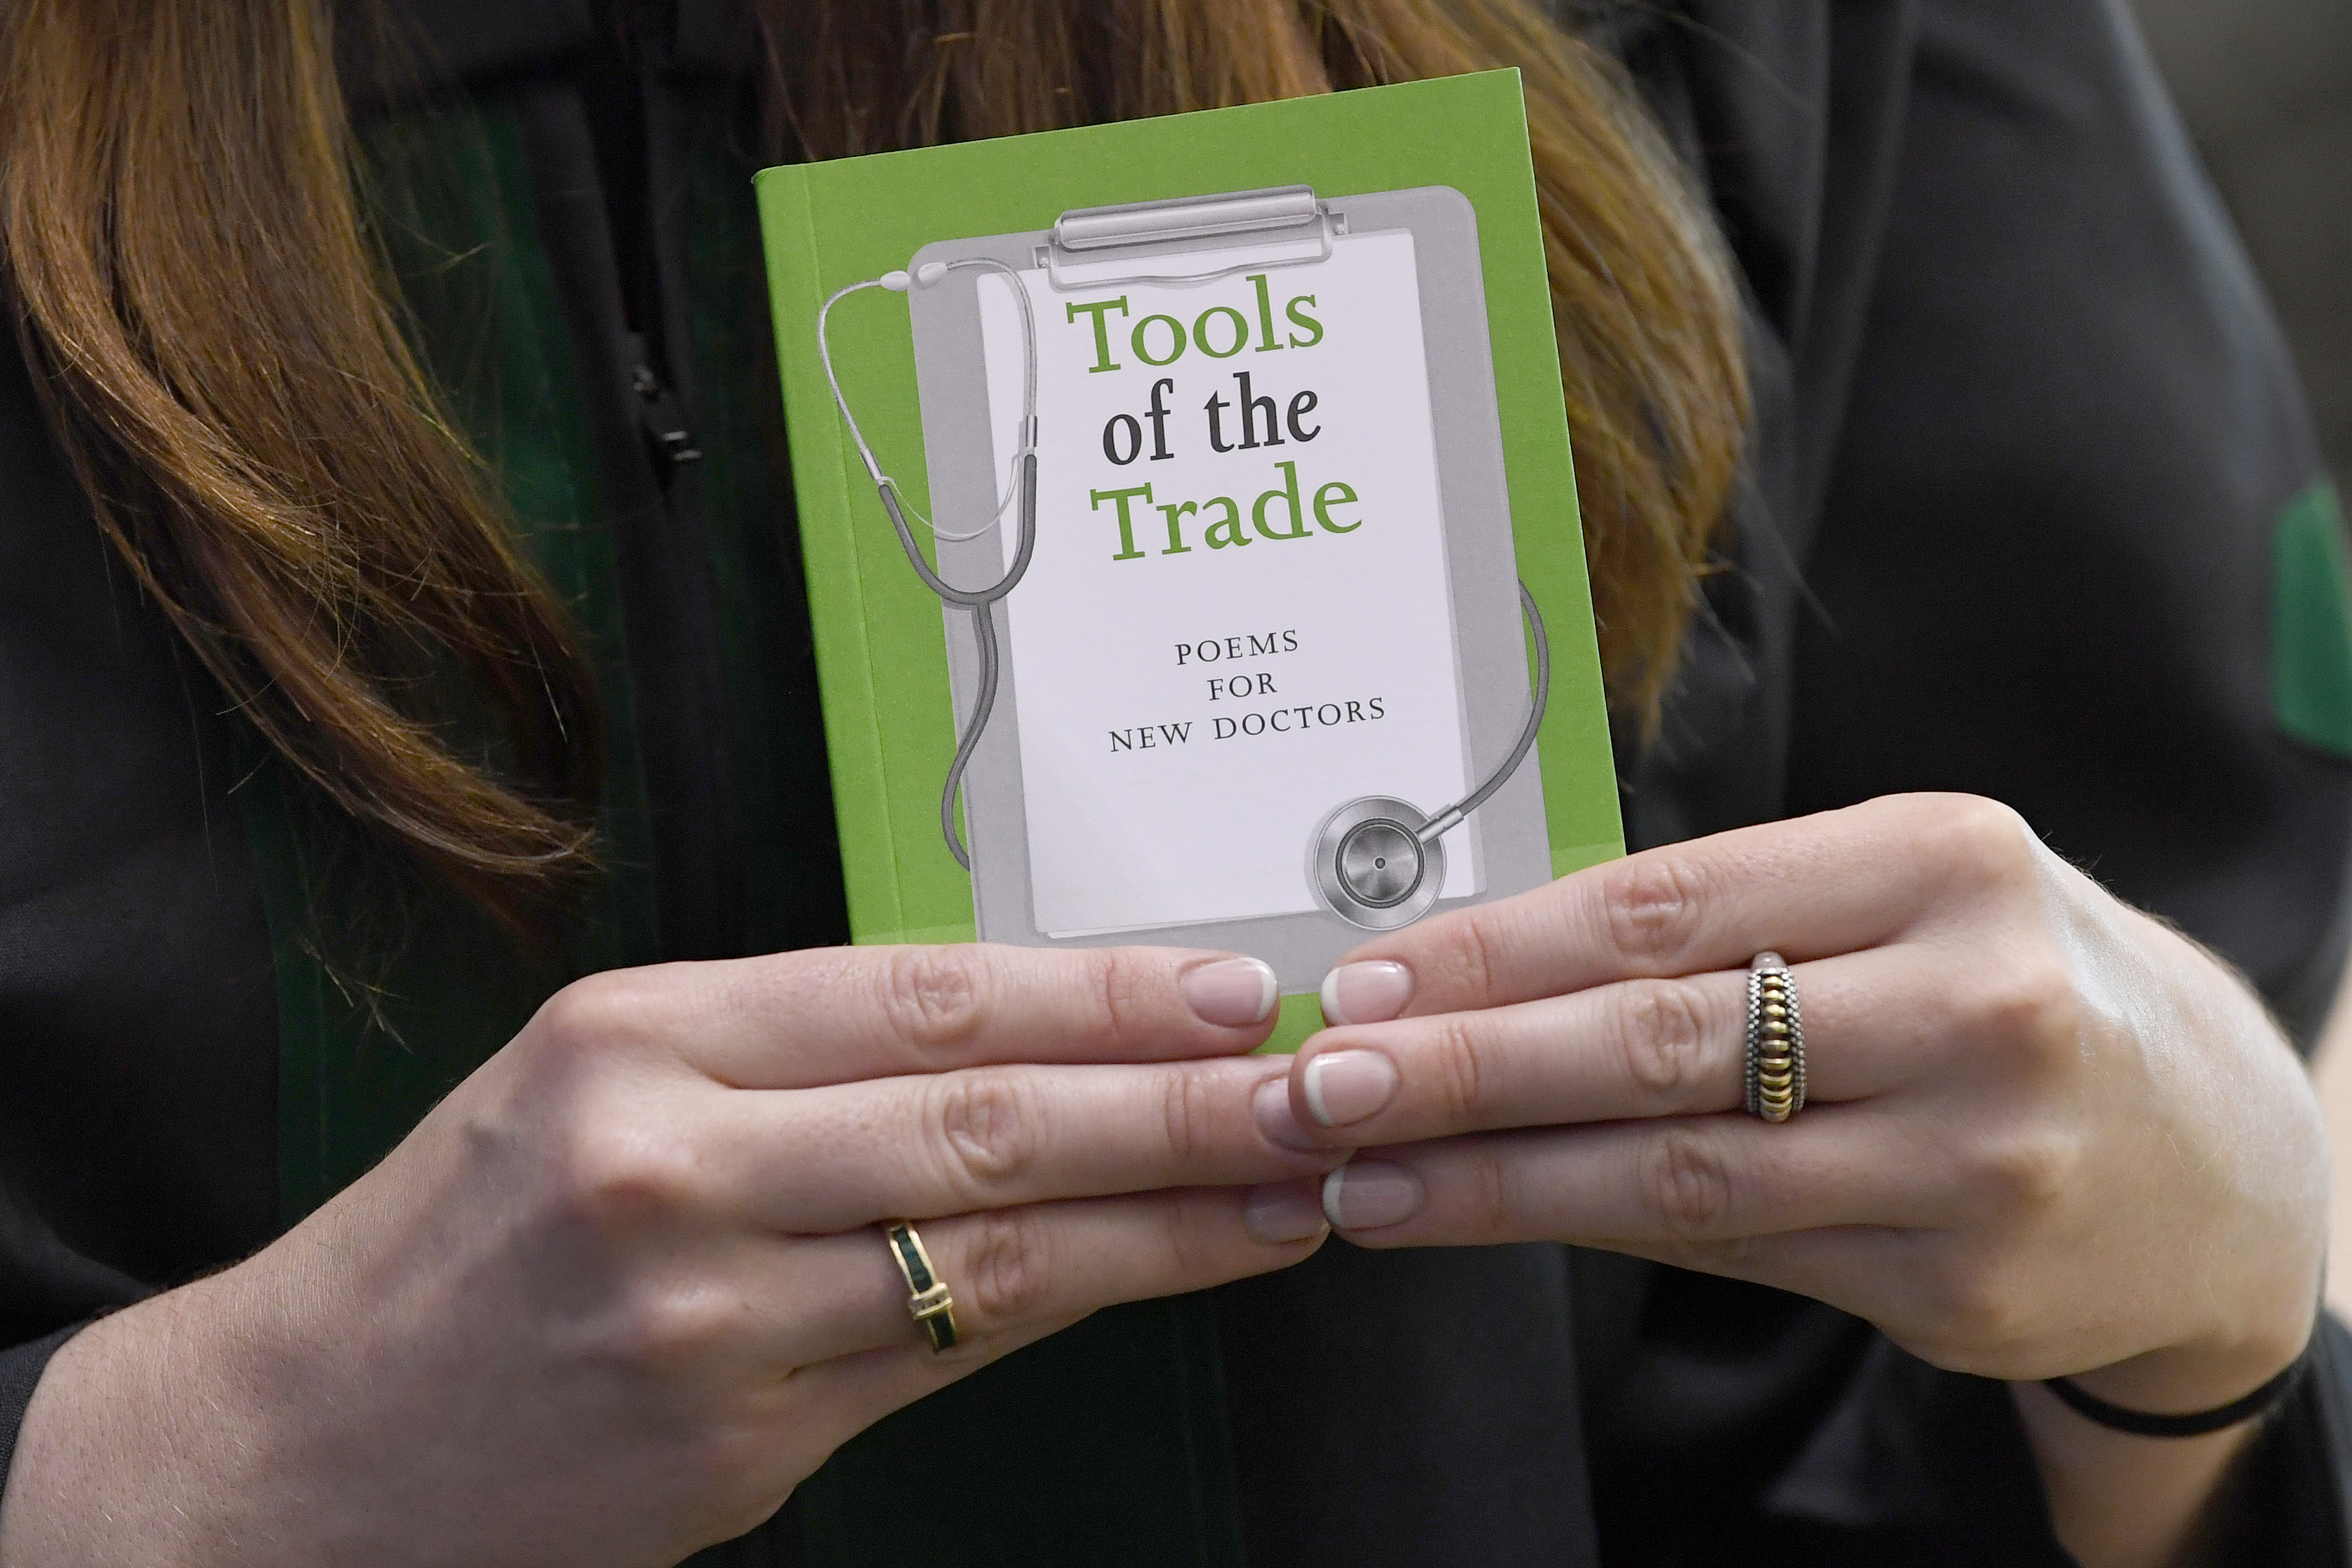 The book, Tools of the Trade: Poems for New Doctors, was presented to all graduates-to-be at commencement practice Wednesday.